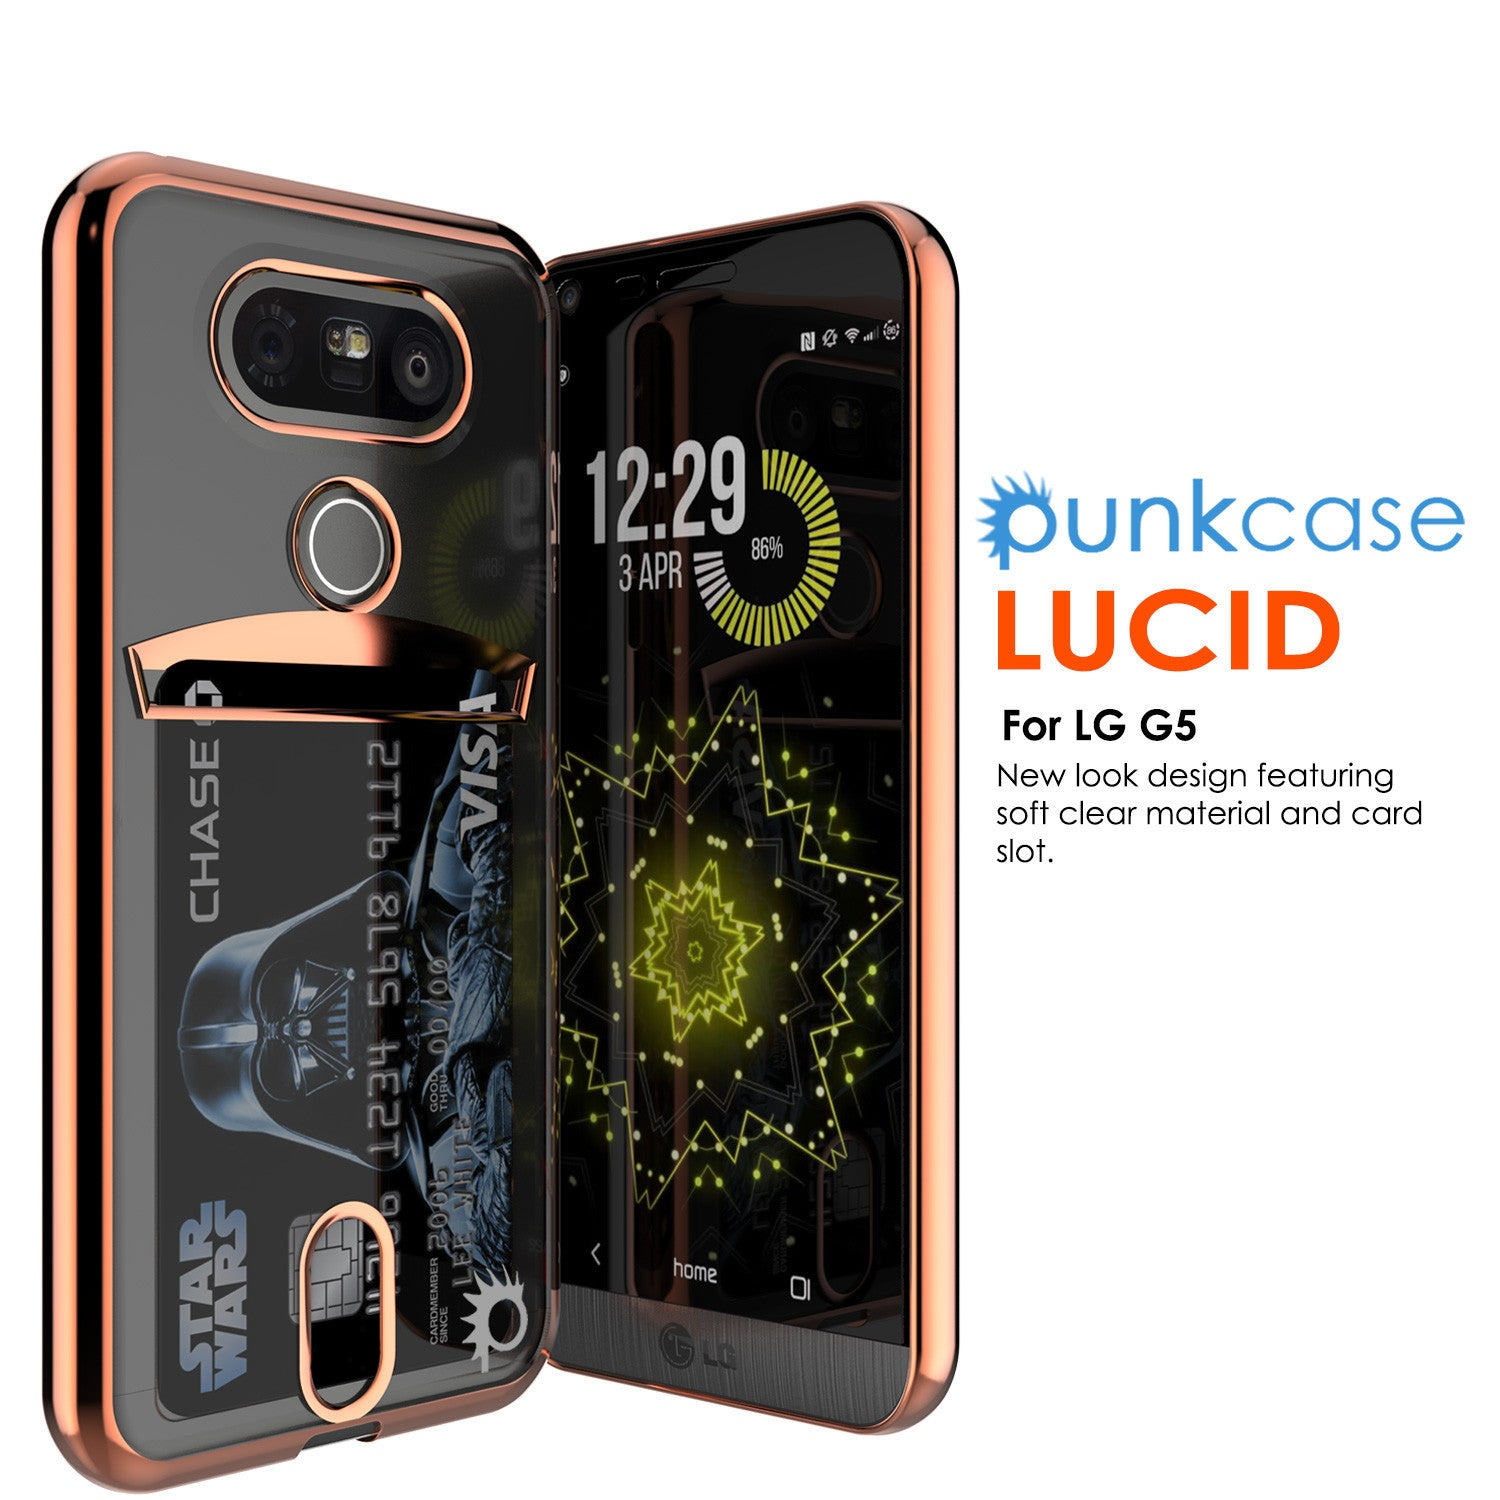 LG G5 Case, PUNKCASE® Rose Gold LUCID  Series | Card Slot | PUNK SHIELD Screen Protector